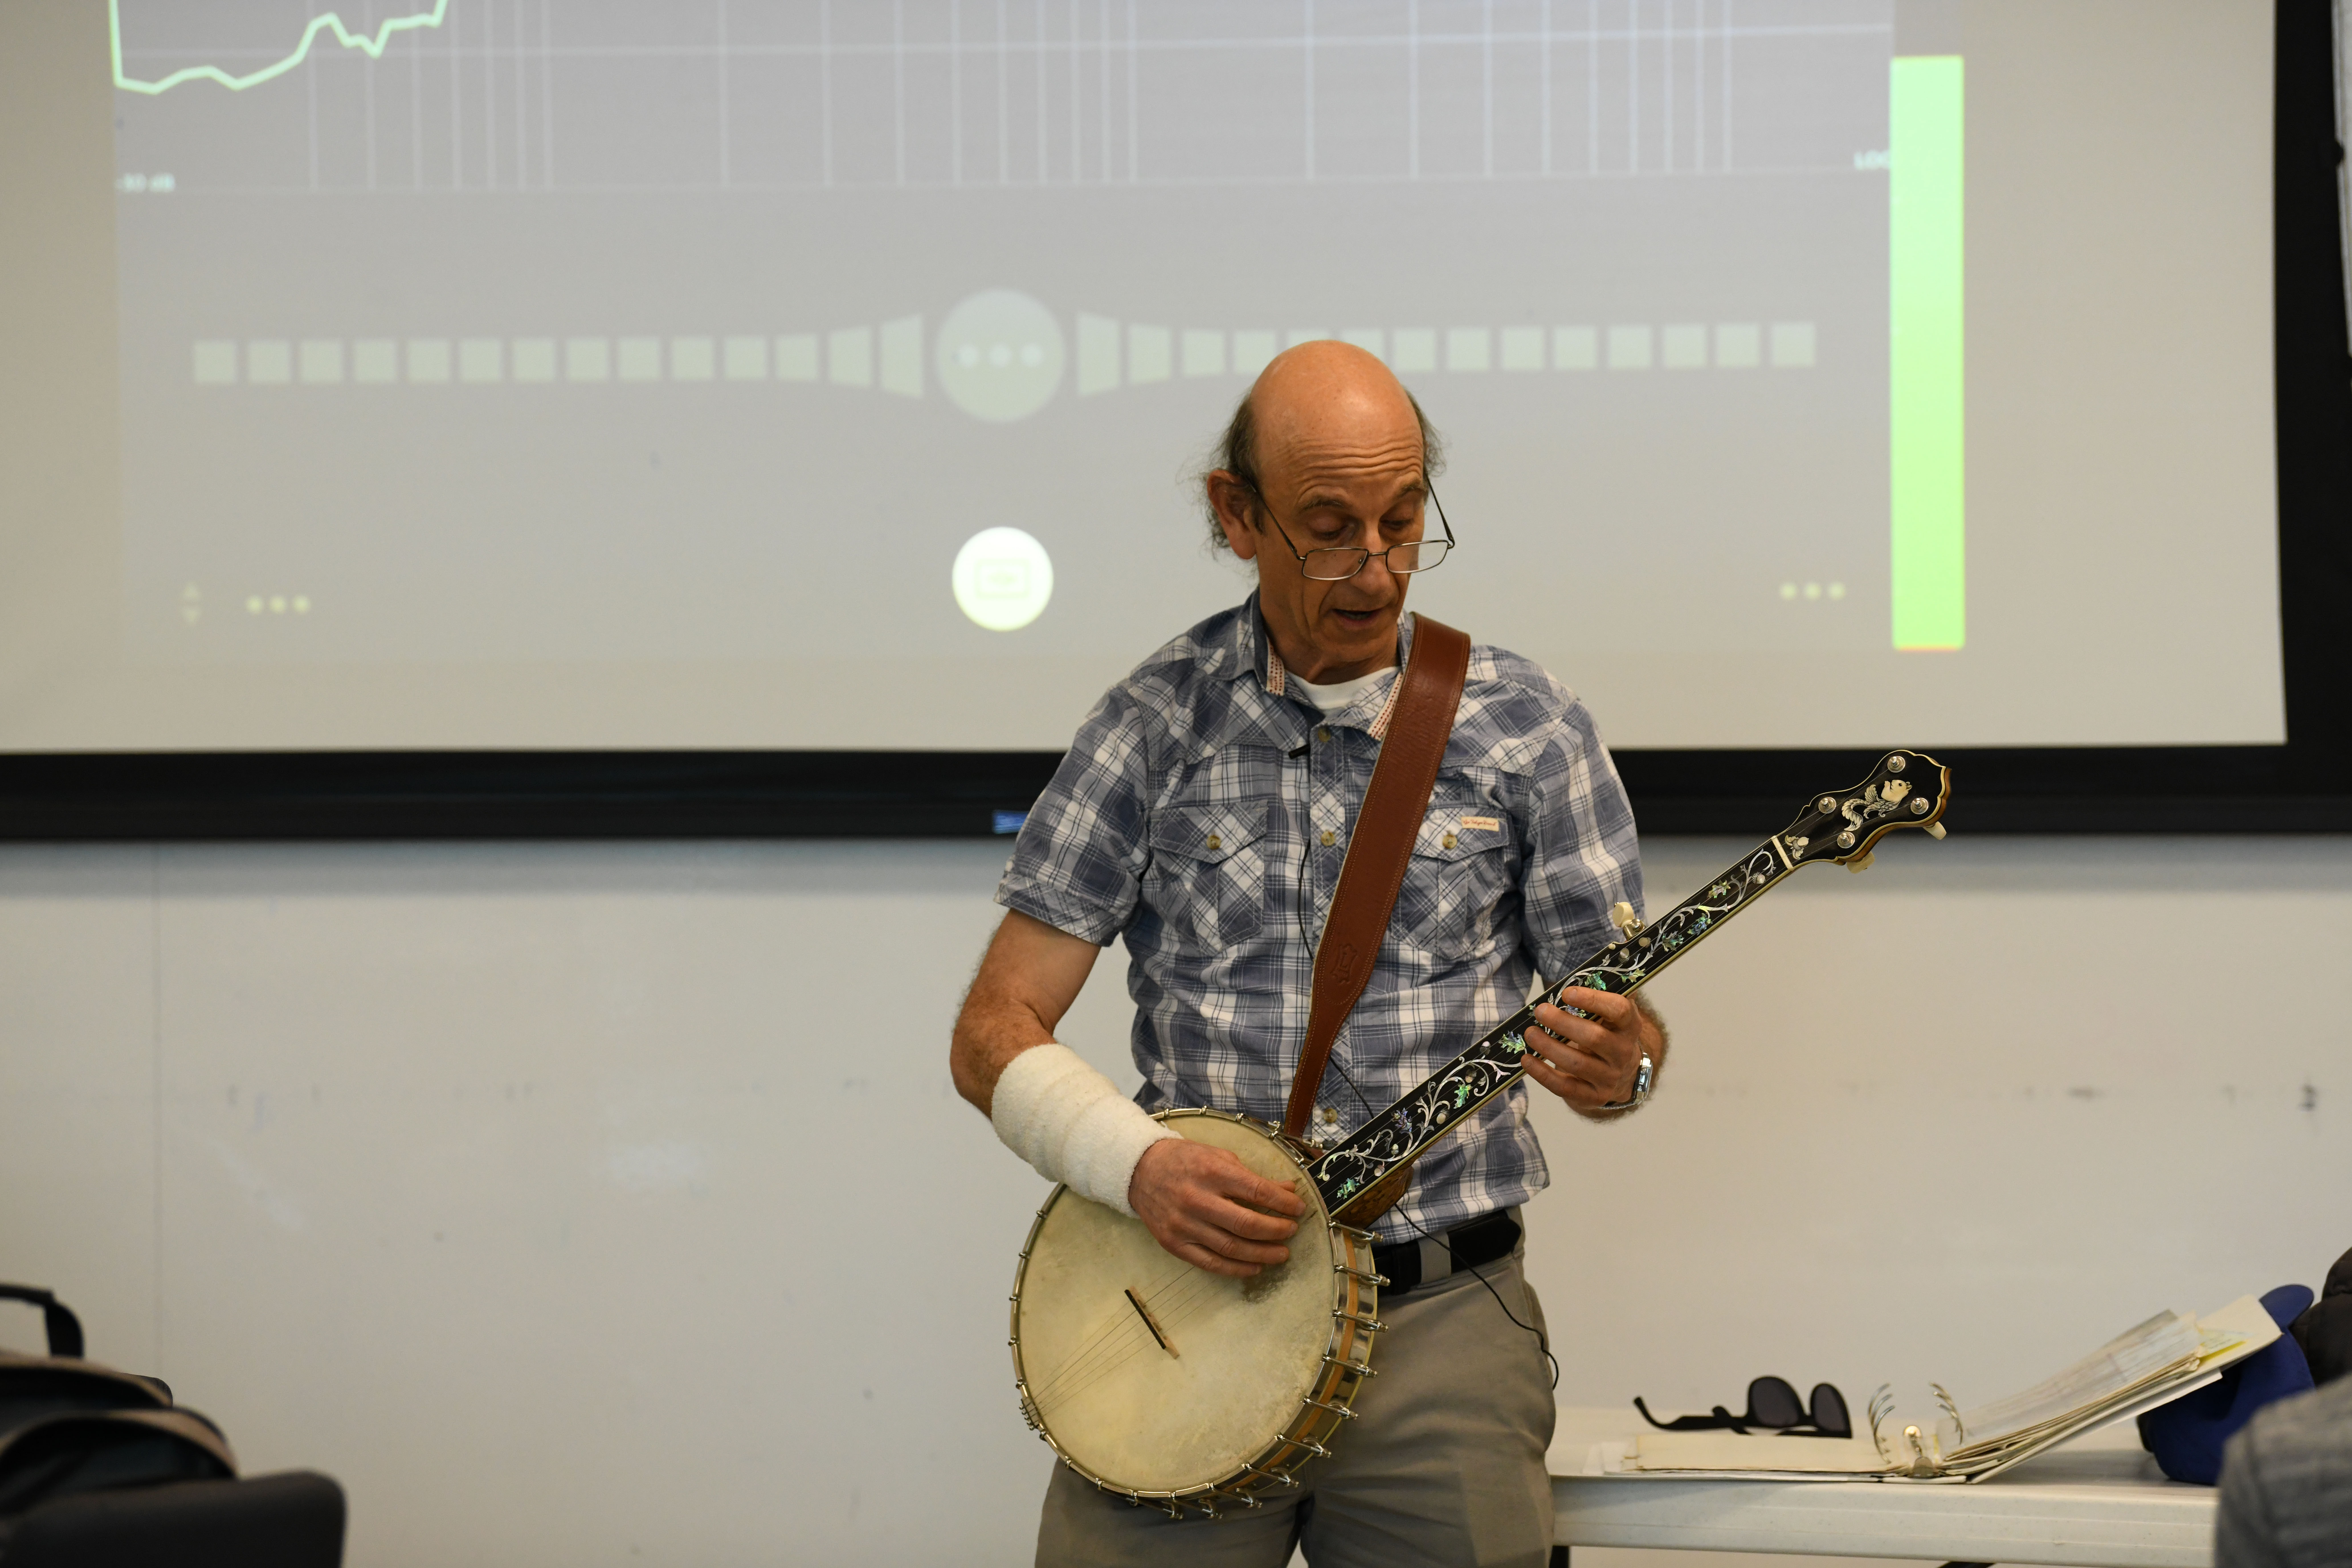 Faculty brings music into classrooms